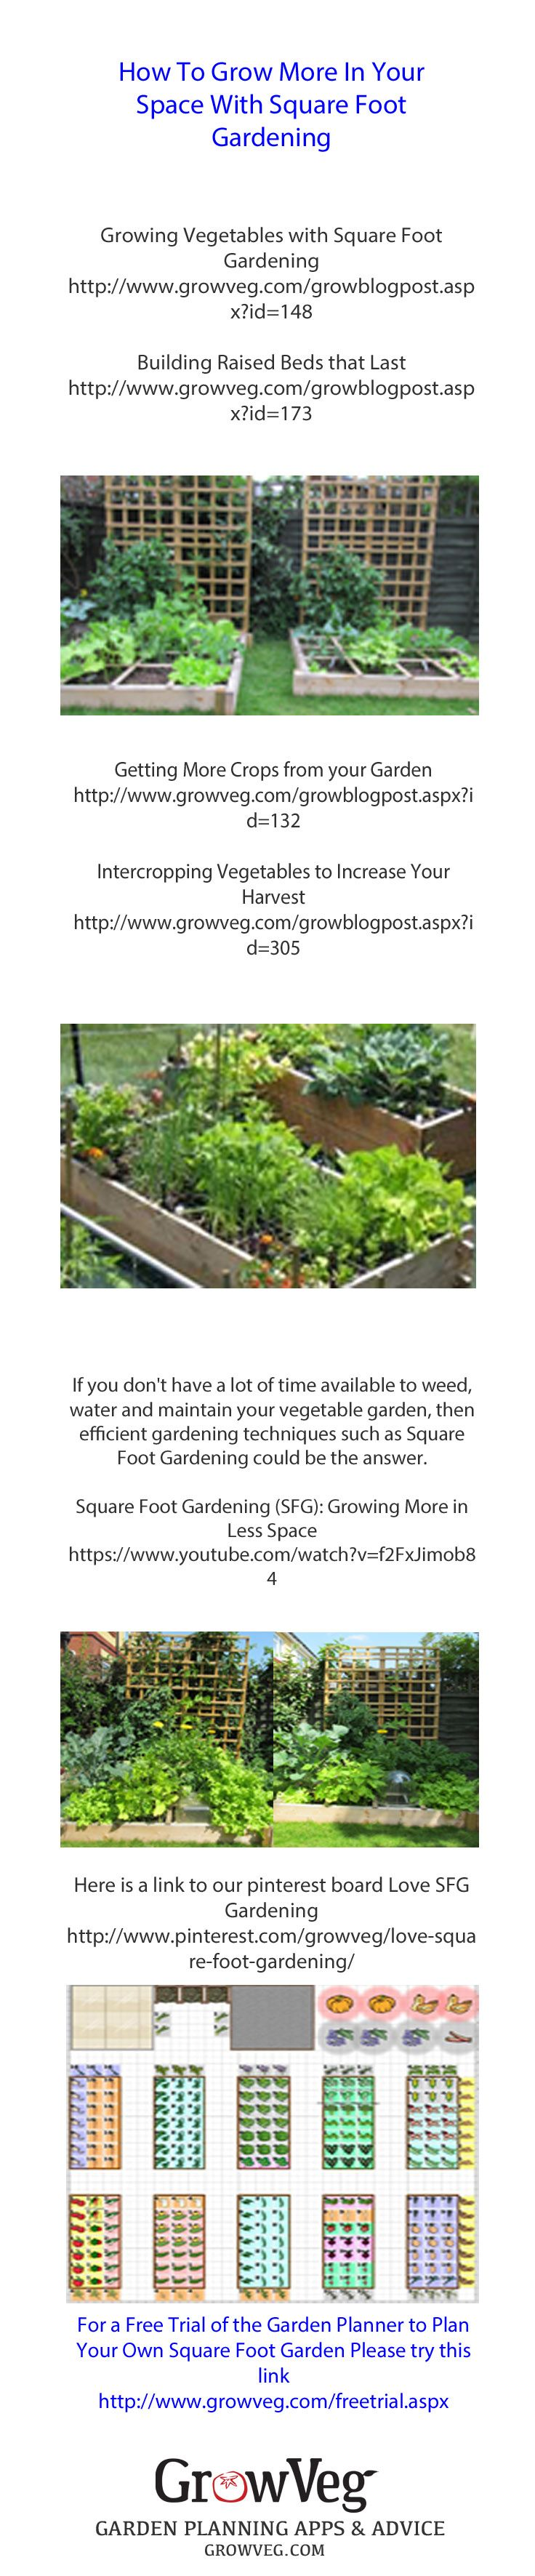 Flower garden layout planner free - Square Foot Gardening Combines A Special Nutrient Rich Potting Compost Blend Companion Planting Principles And